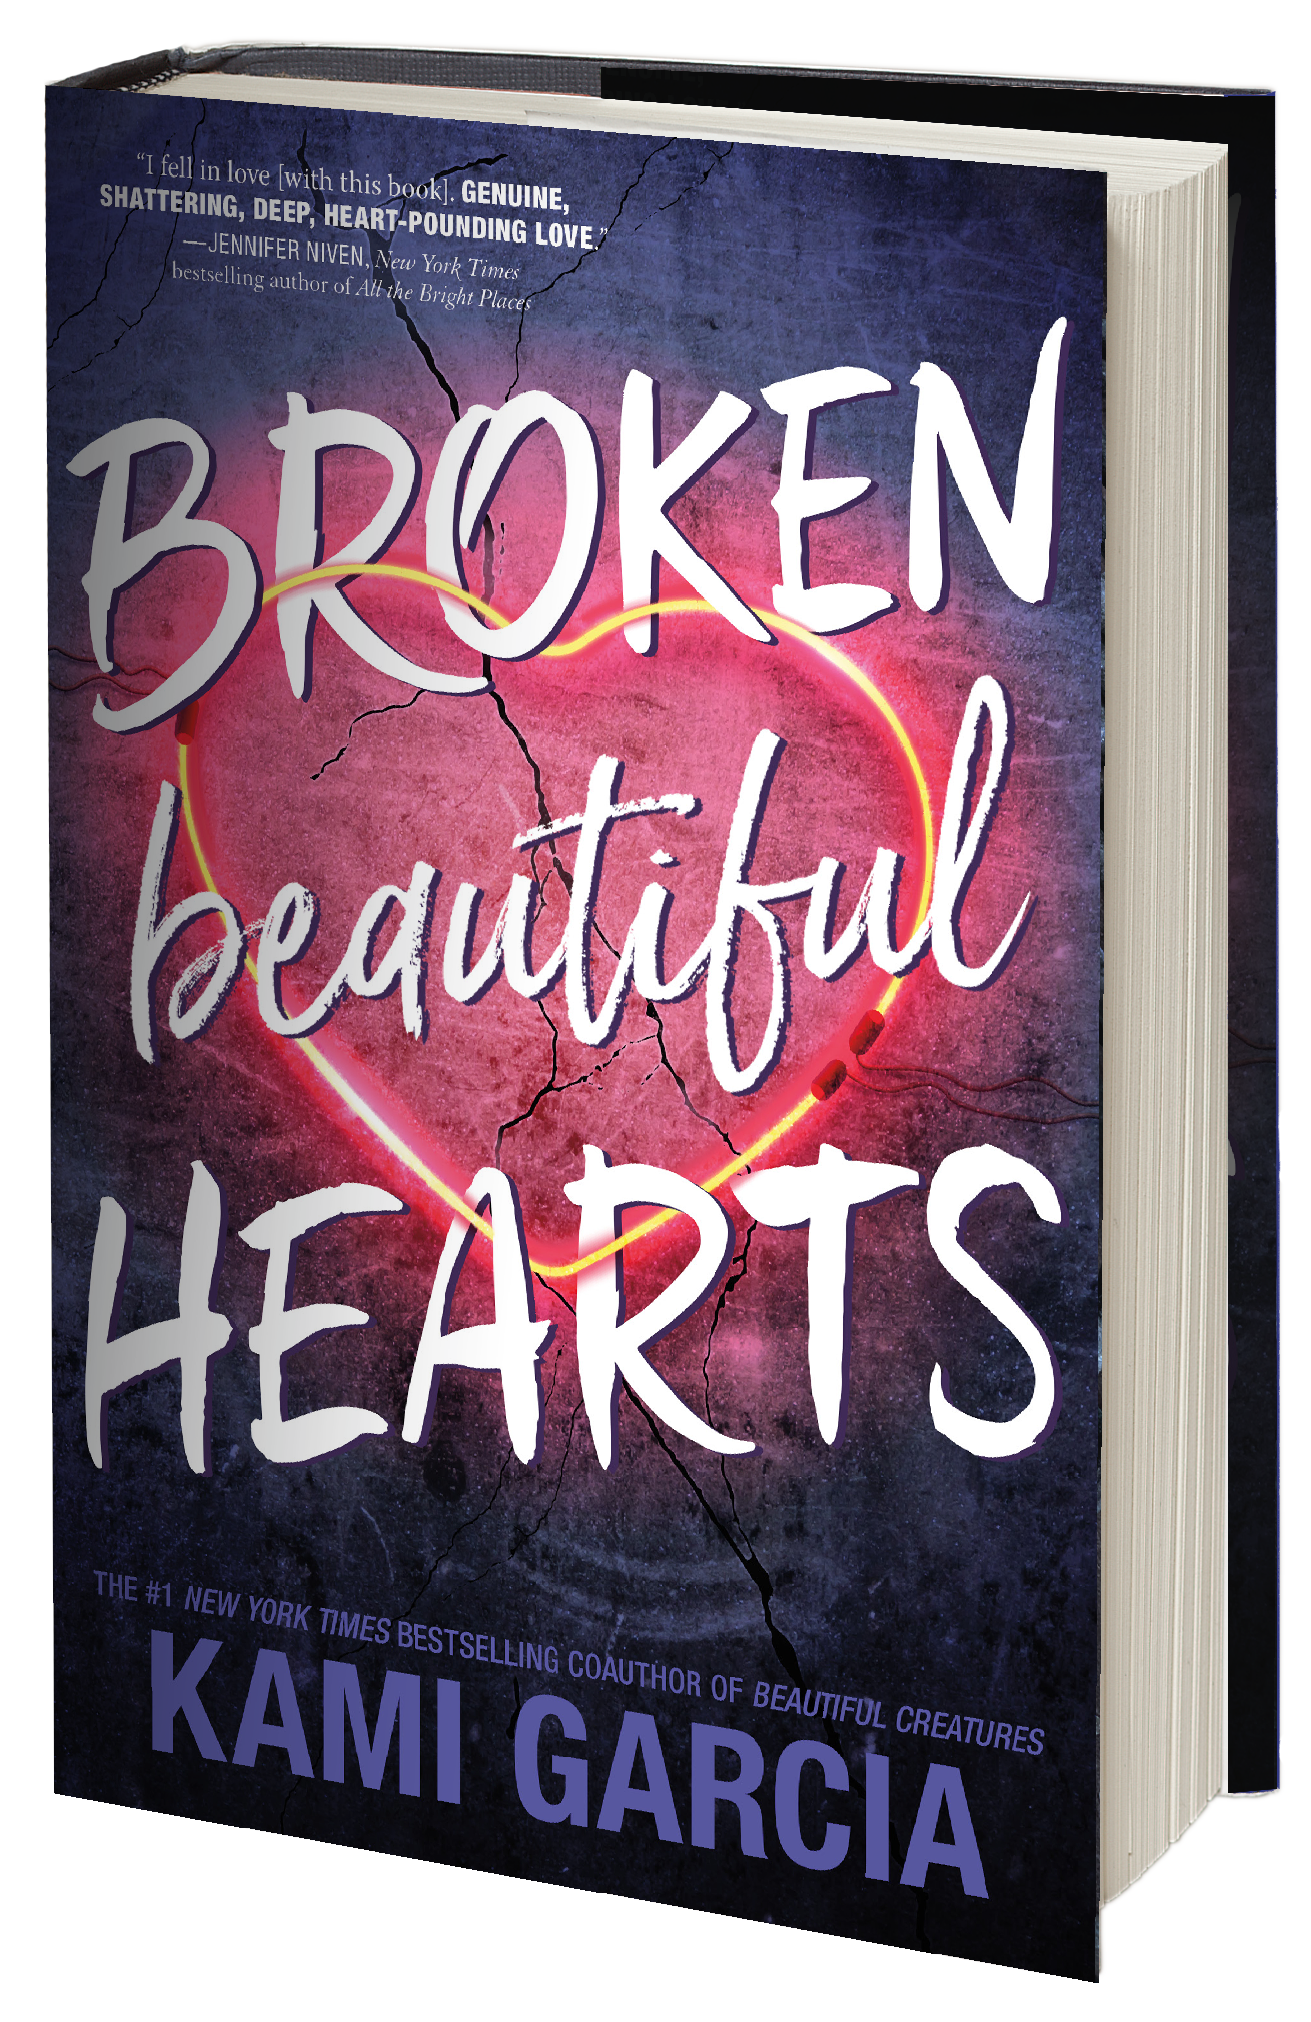 Broken Beautiful Hearts Kami Garcia Imprint